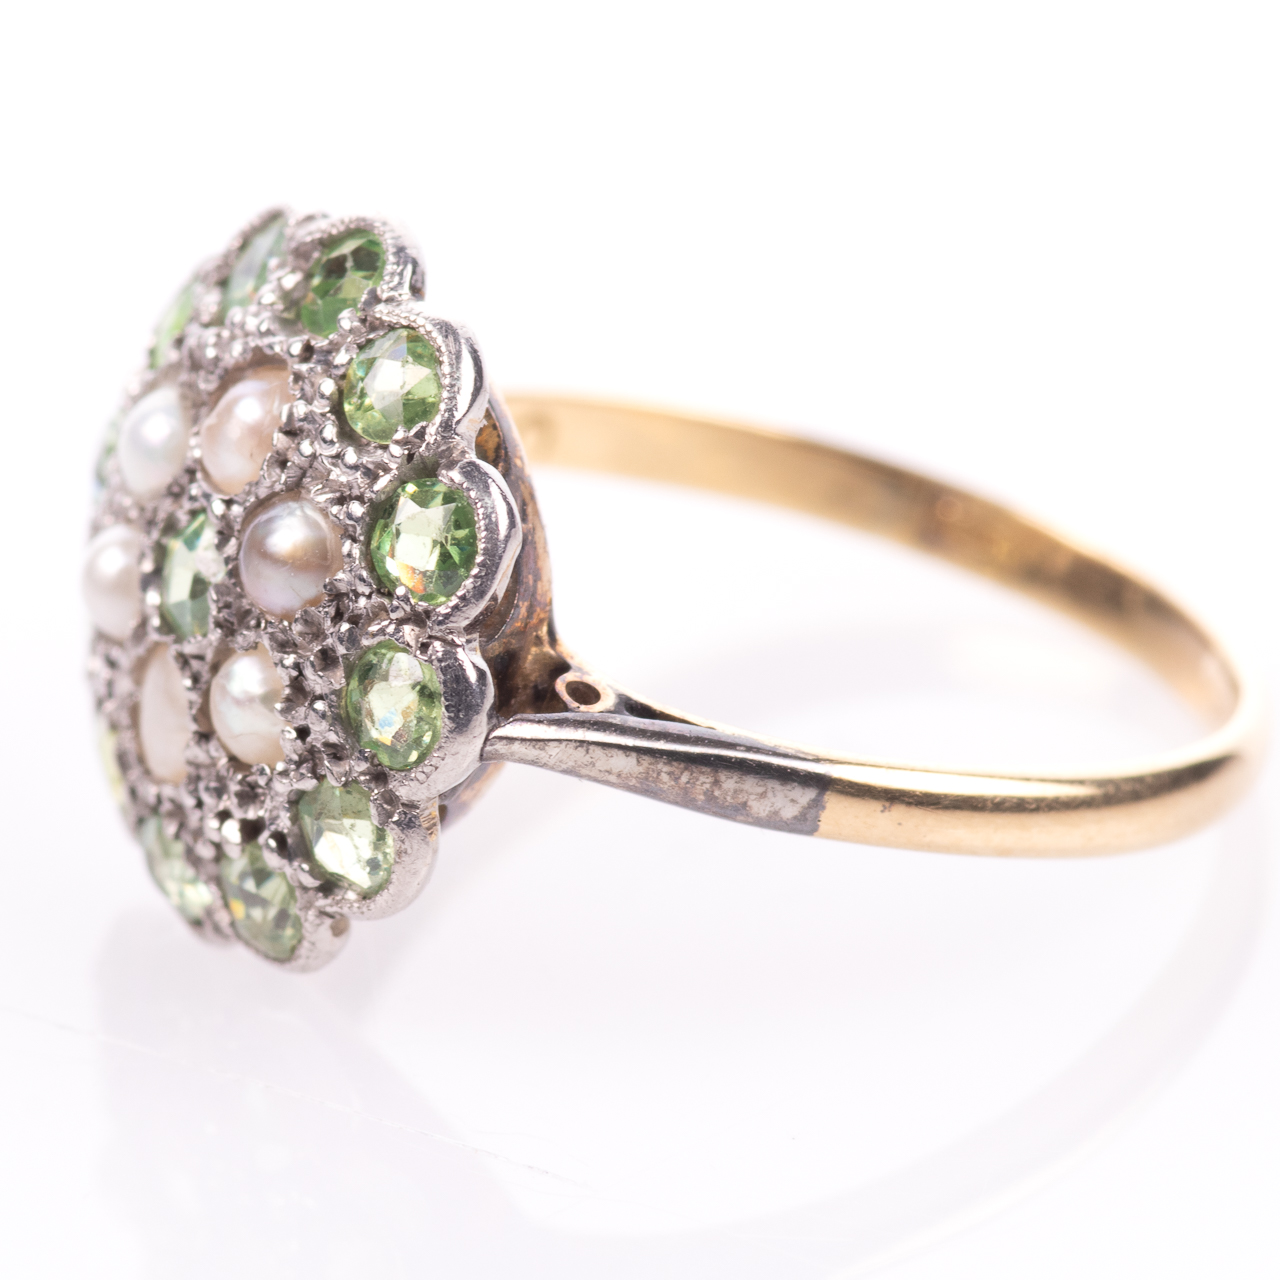 18ct Gold Victorian Peridot & Pearl Cluster Ring - Image 4 of 8